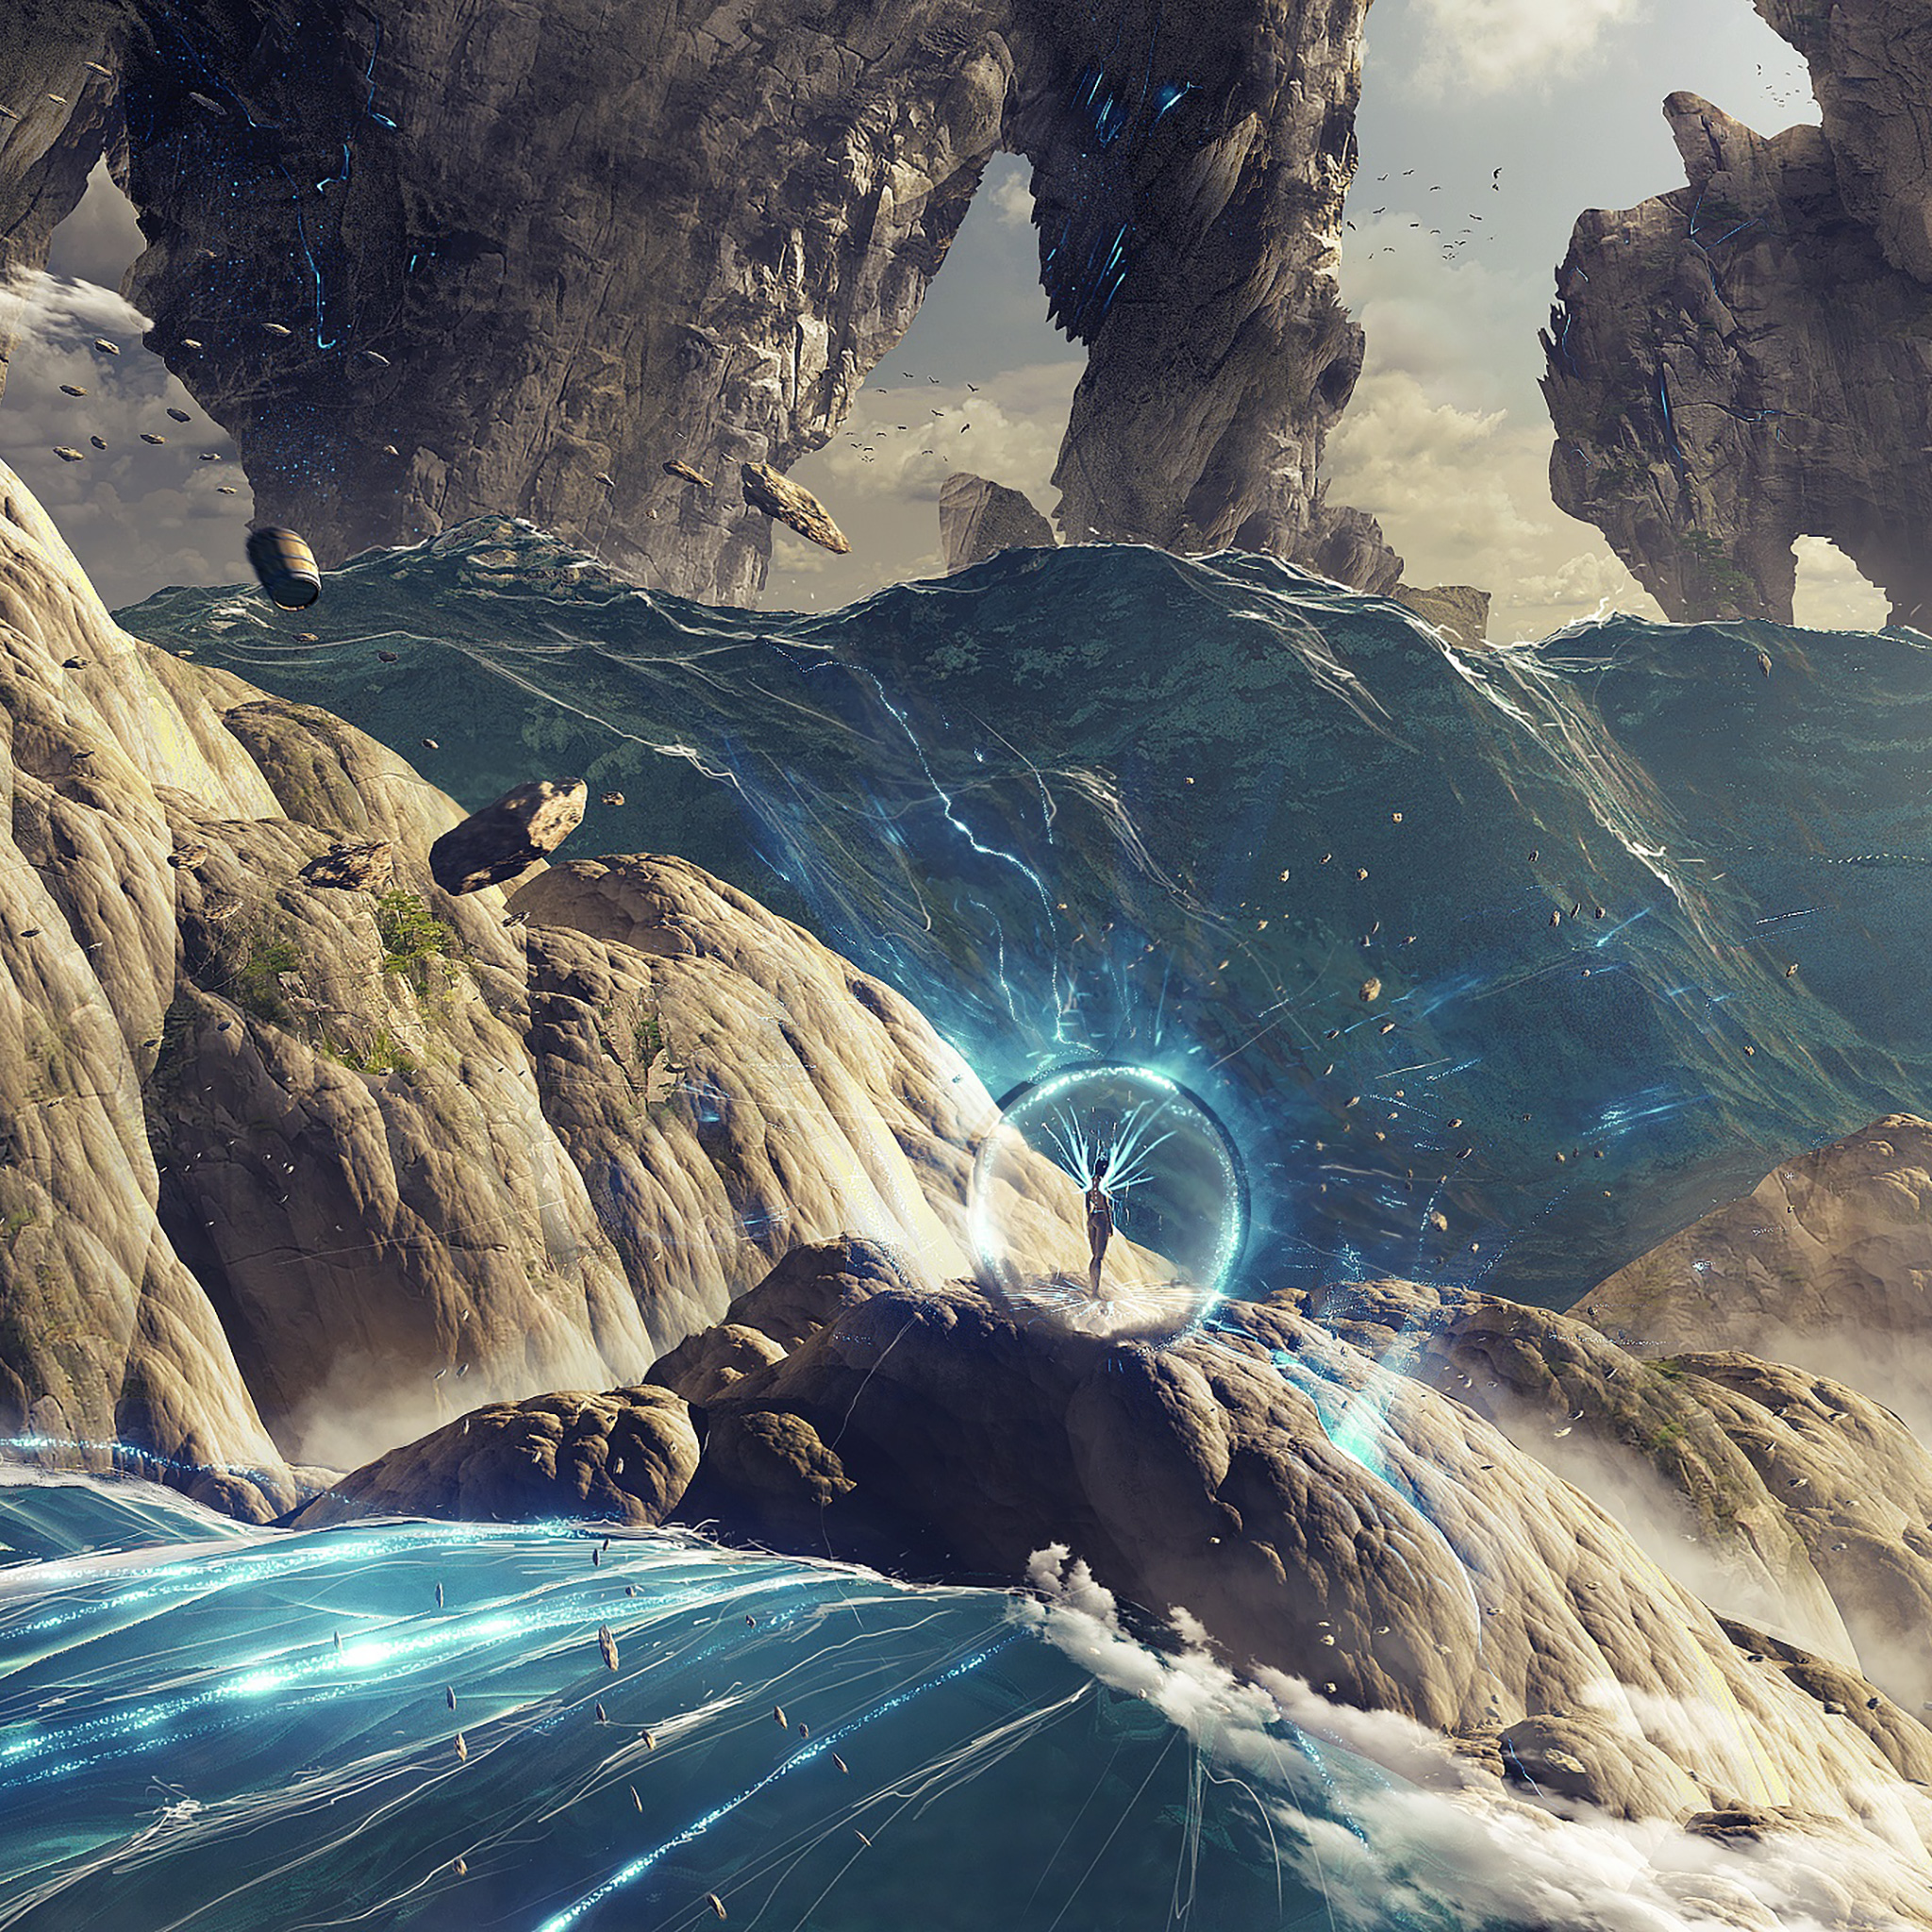 Wallpaper of the Week by Antoine Collignon